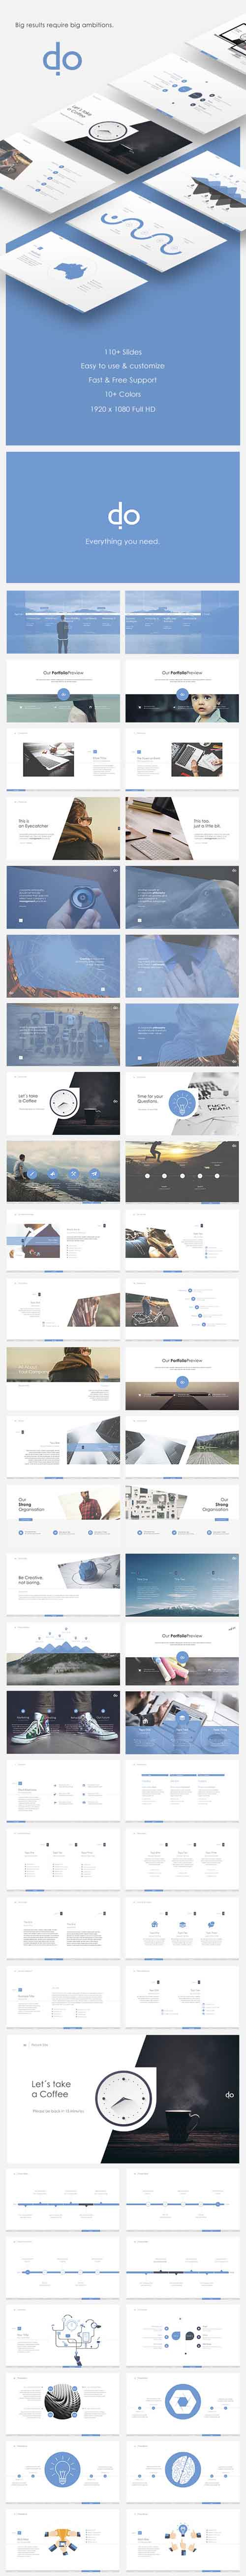 do Powerpoint Template 15649071